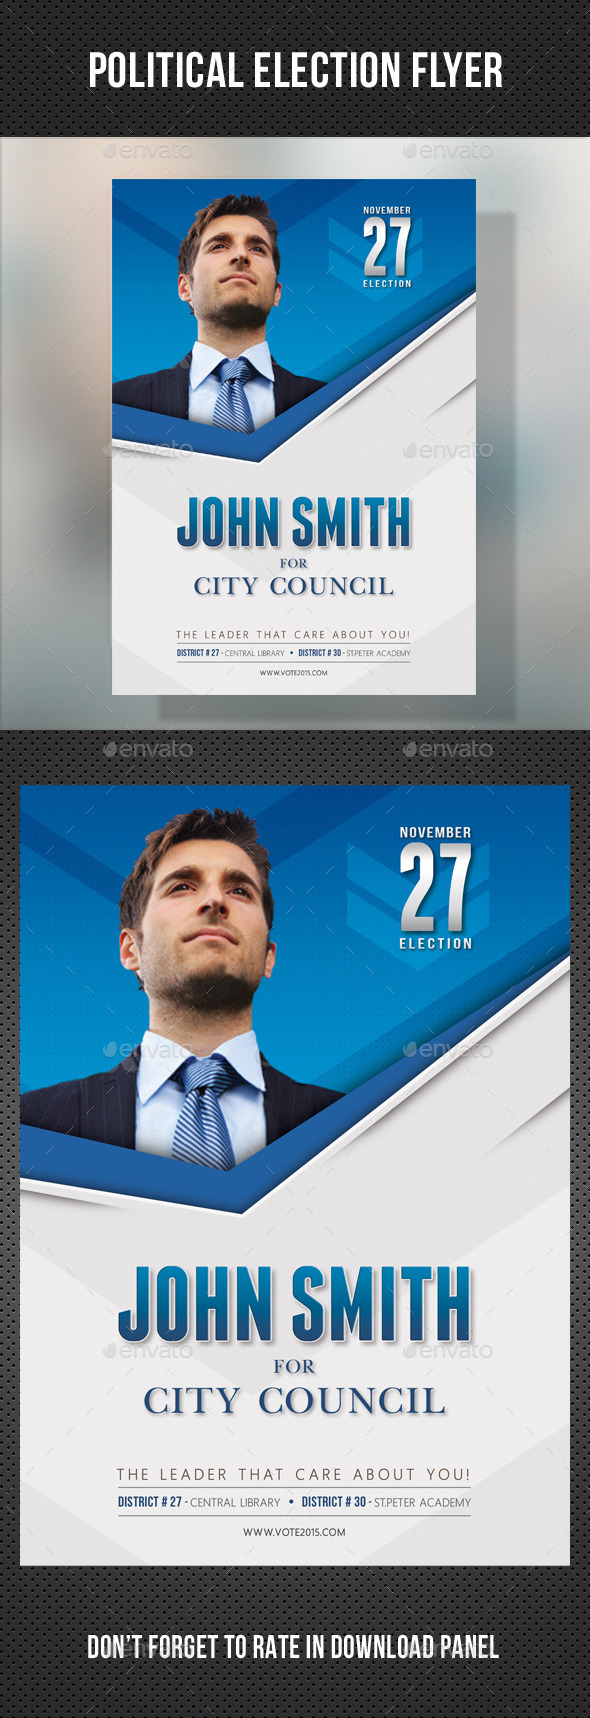 Election Flyer Templates Graphics Designs Templates – Political Flyer Template